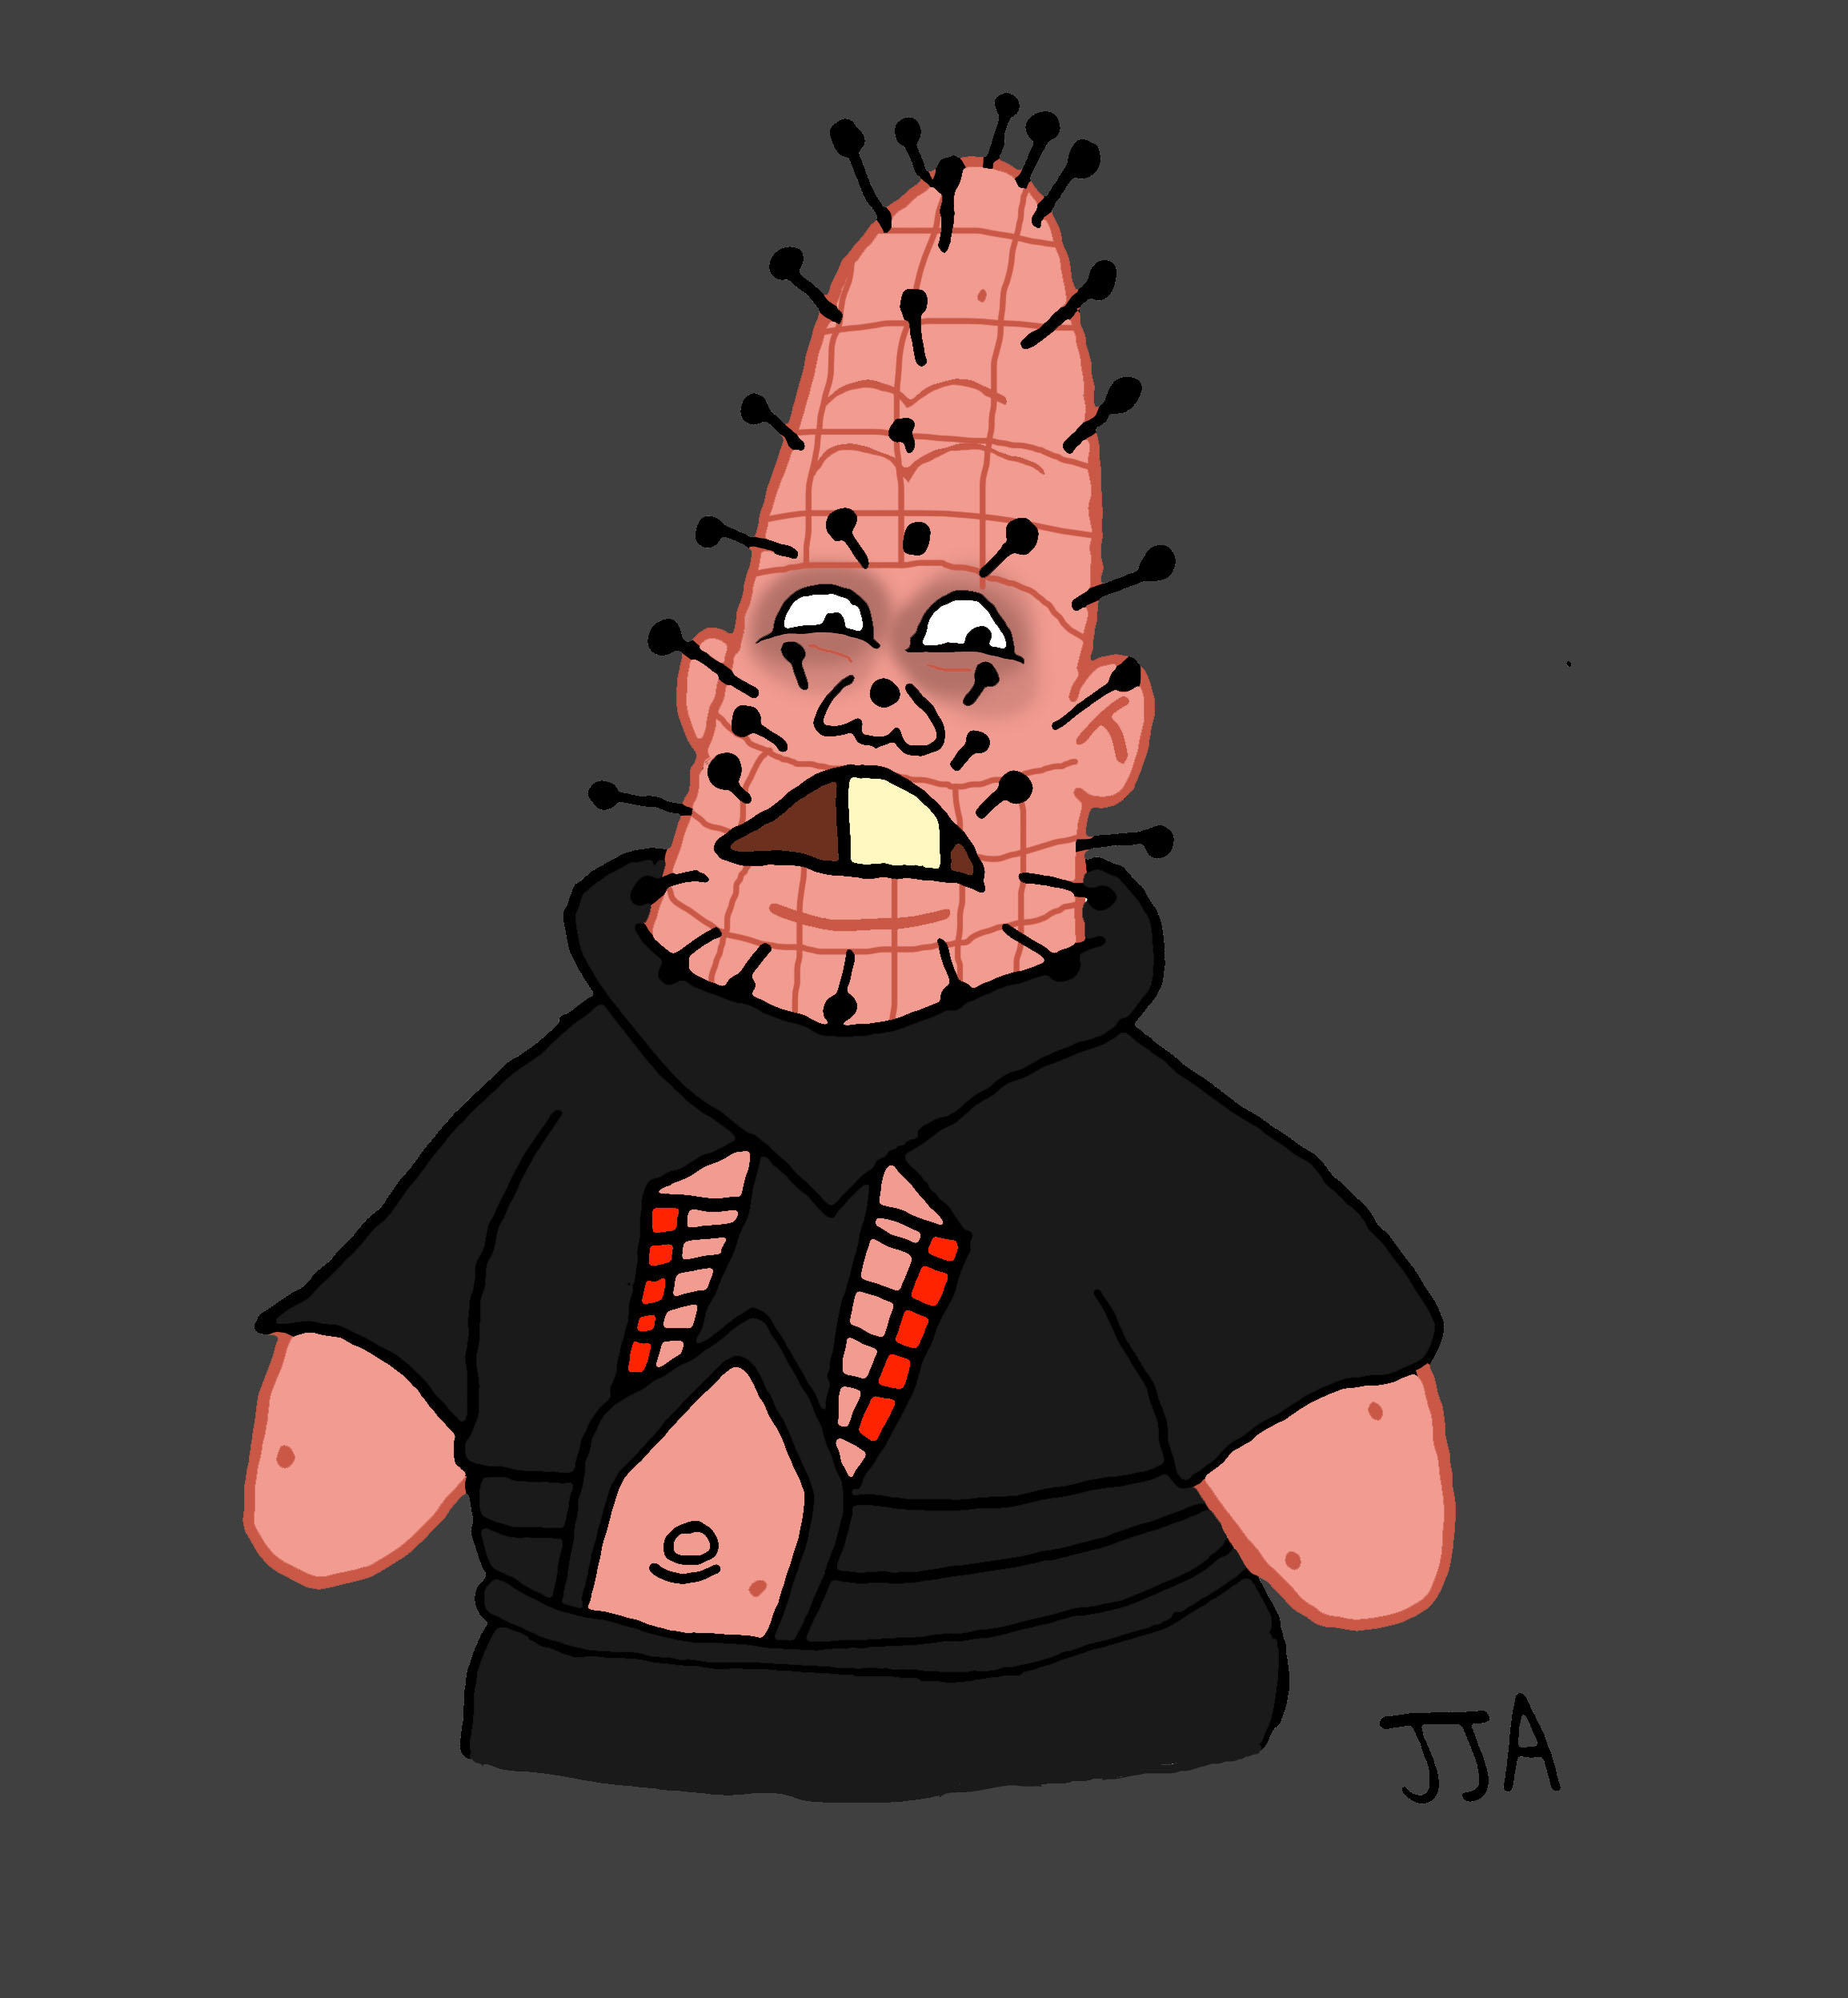 Who You Callin Pinhead Spongebob Squarepants Know Your Meme